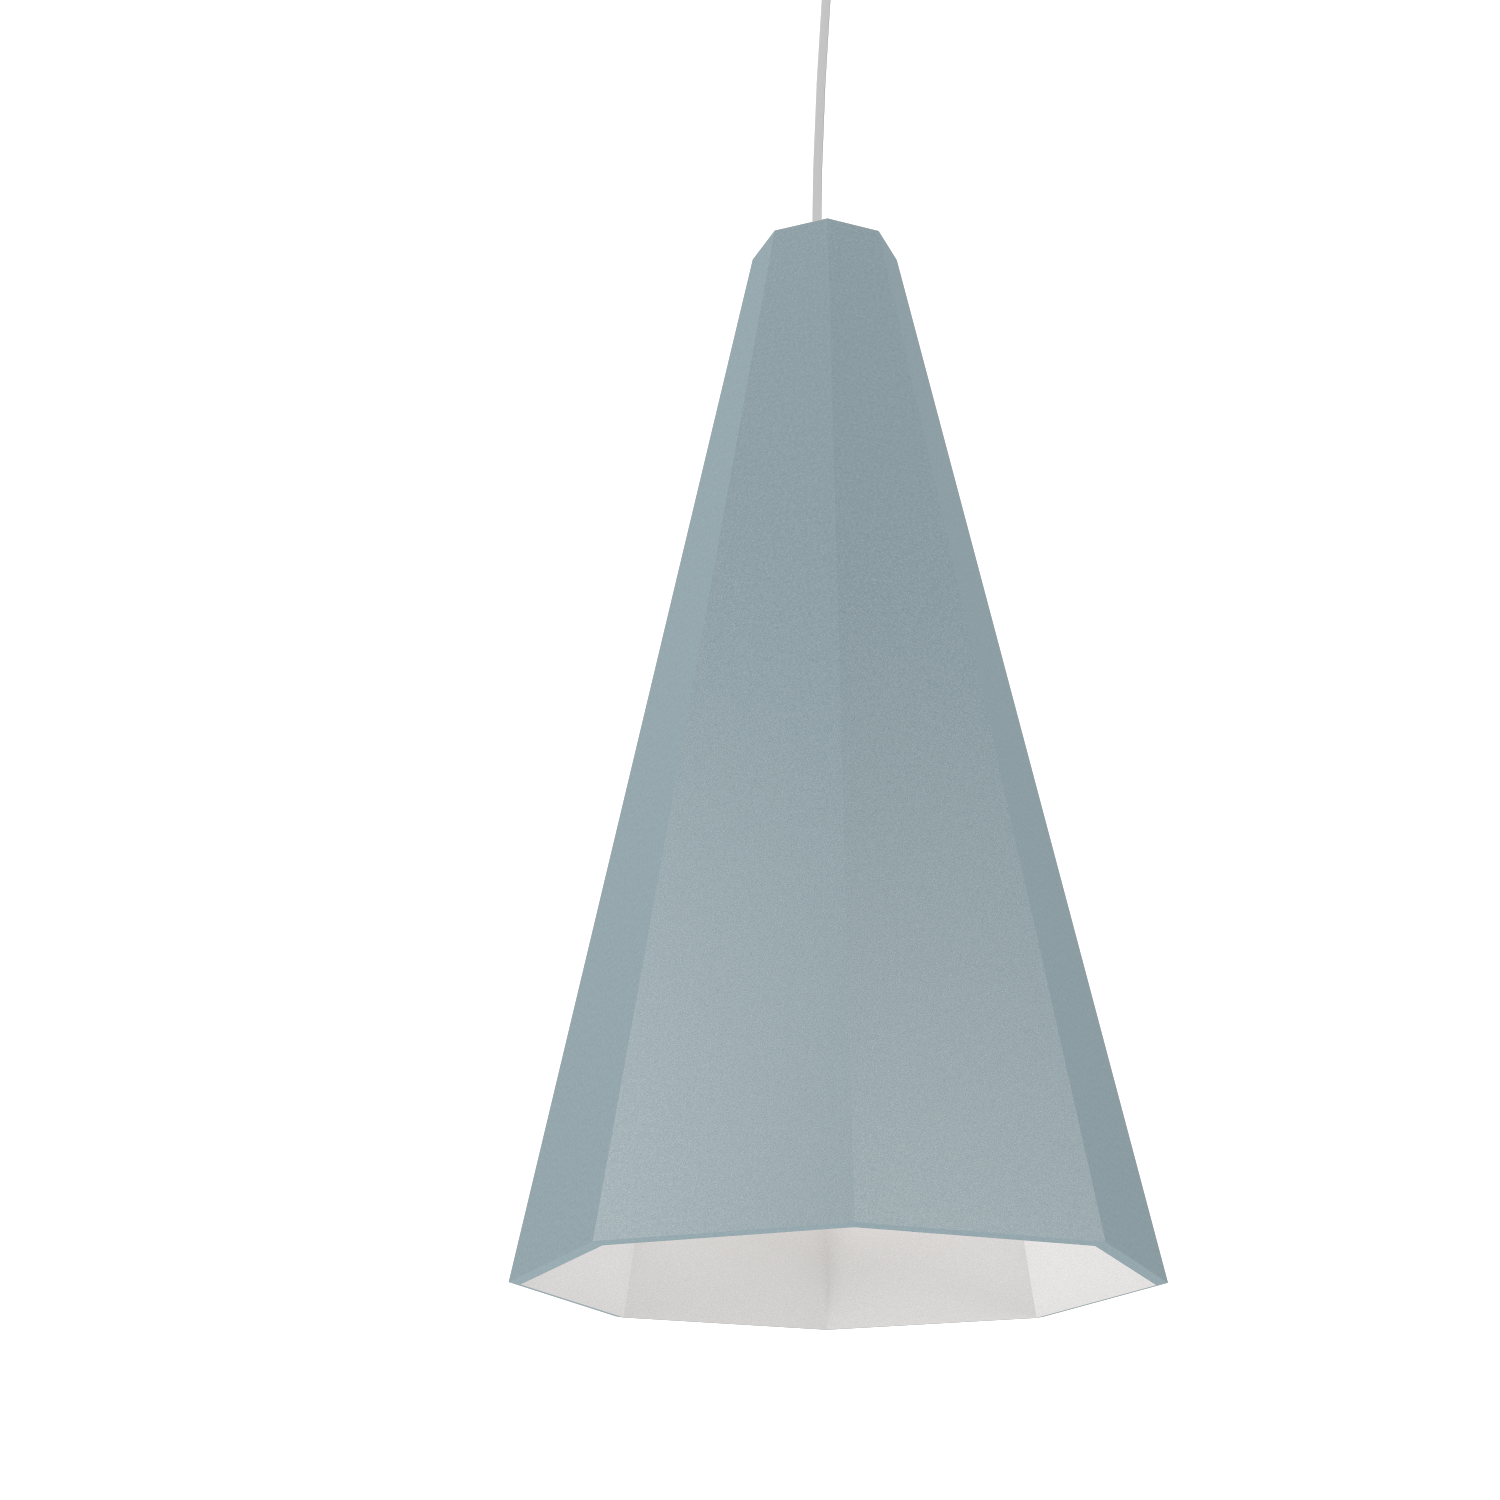 Pendant Lamp Accord Facetado 1231 - Facetada Line Accord Lighting | Satin Blue